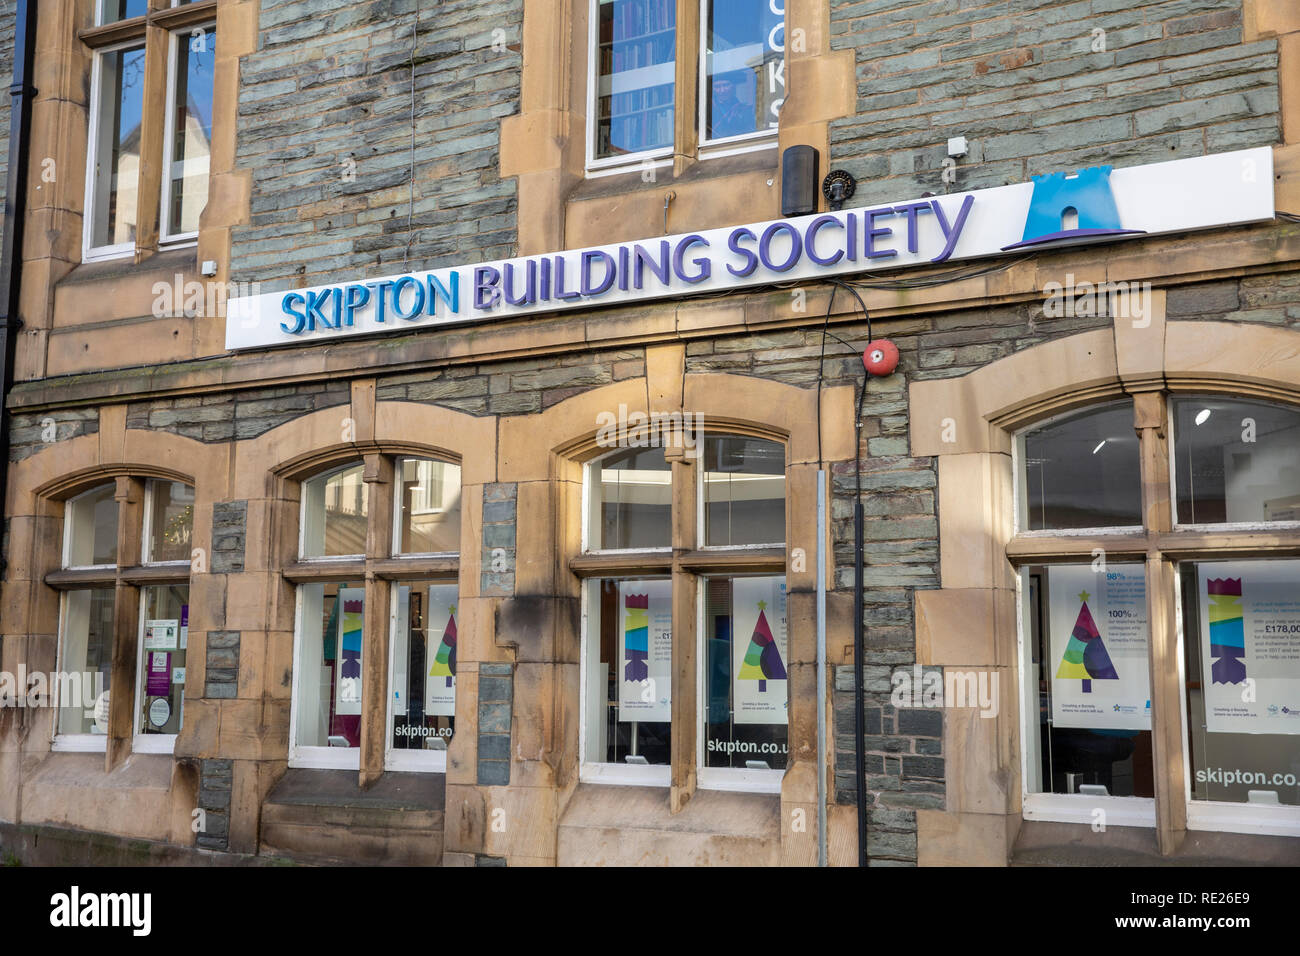 Skipton building society branch in Keswick town centre,Lake District,Cumbria,England - Stock Image